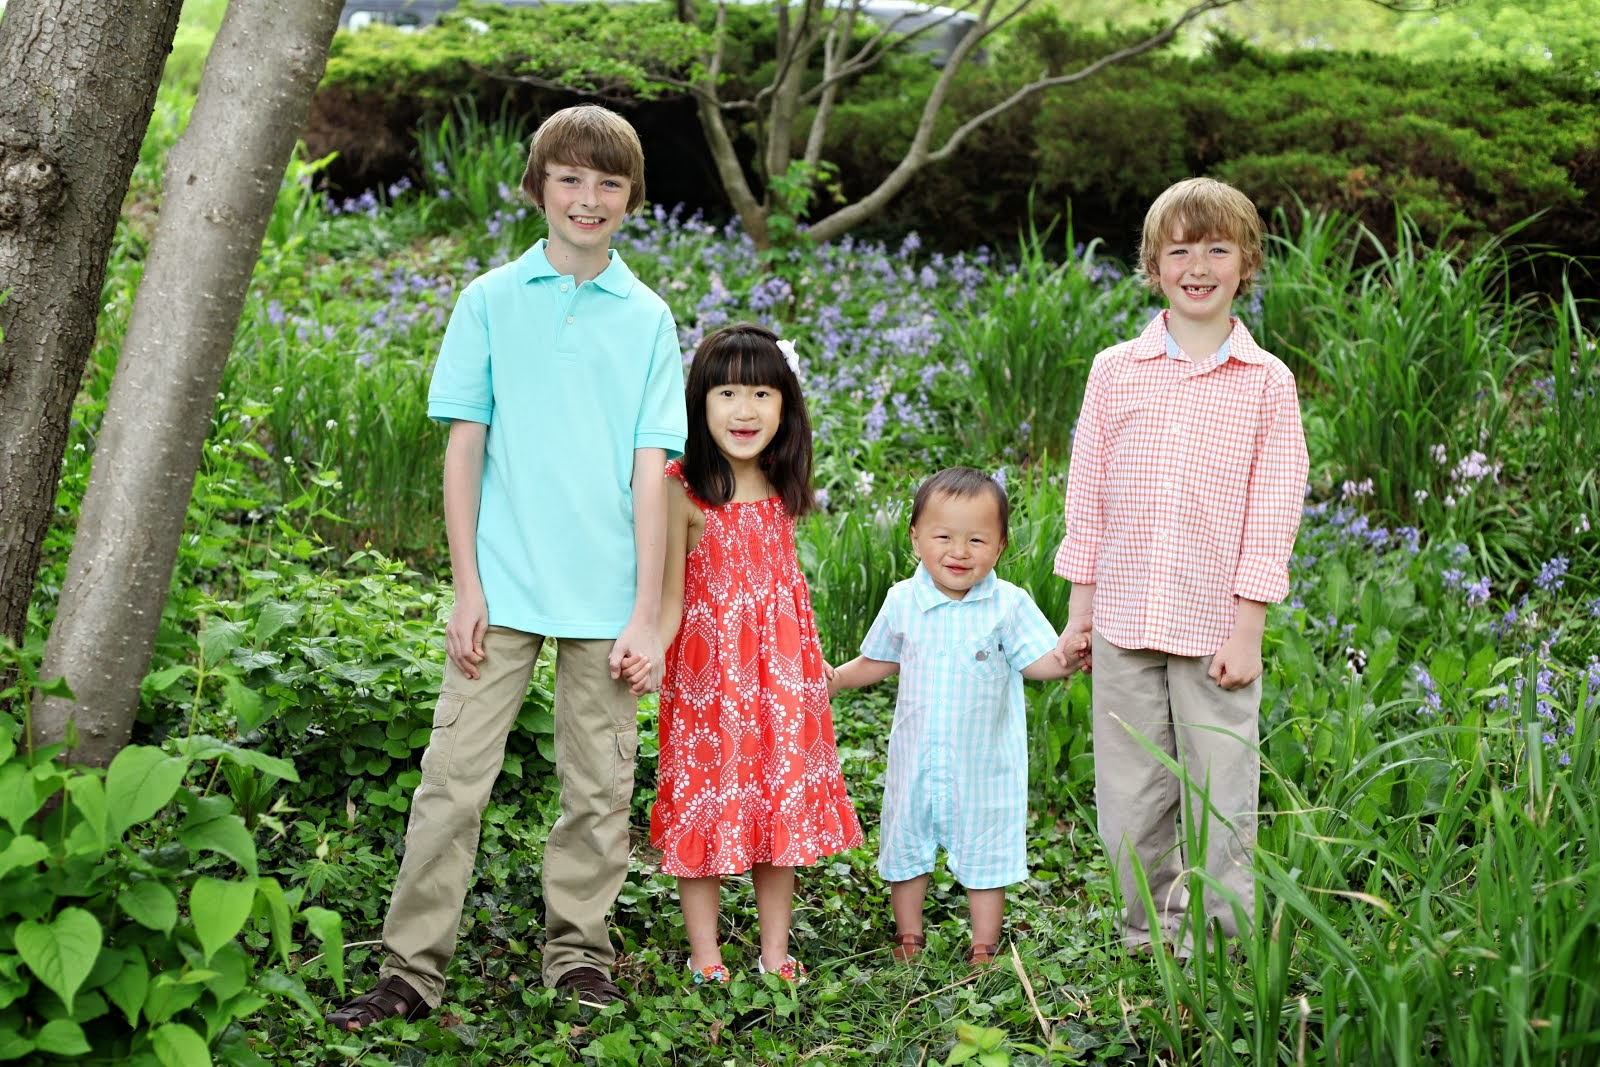 Our four blessings